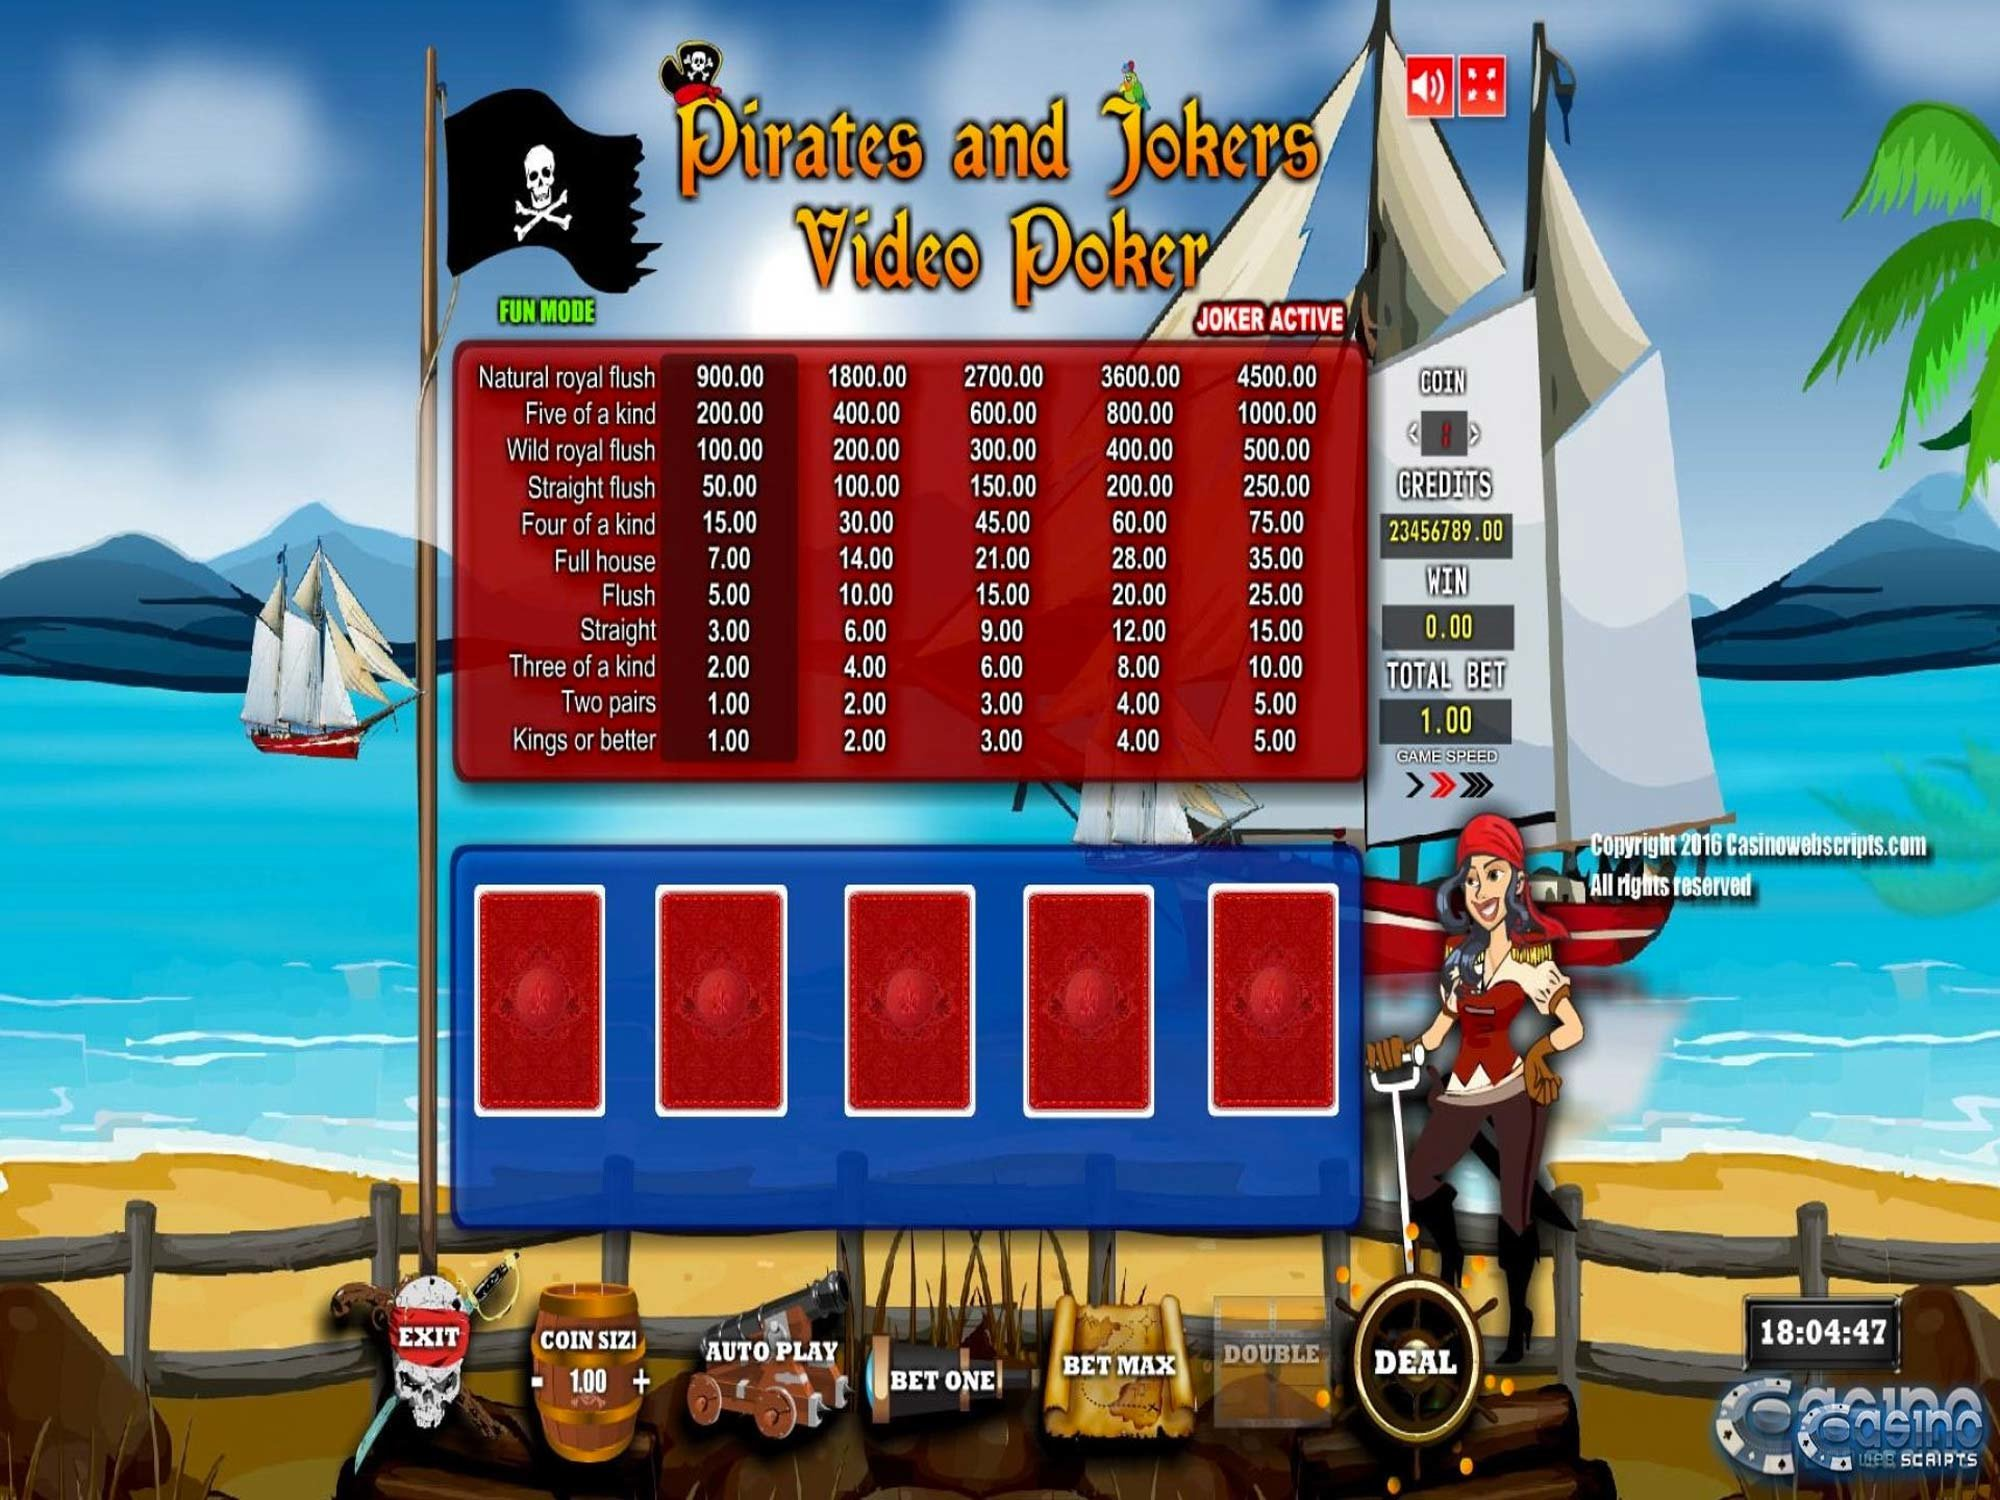 Pirates And Jokers Game by CasinoWebScripts screenshot